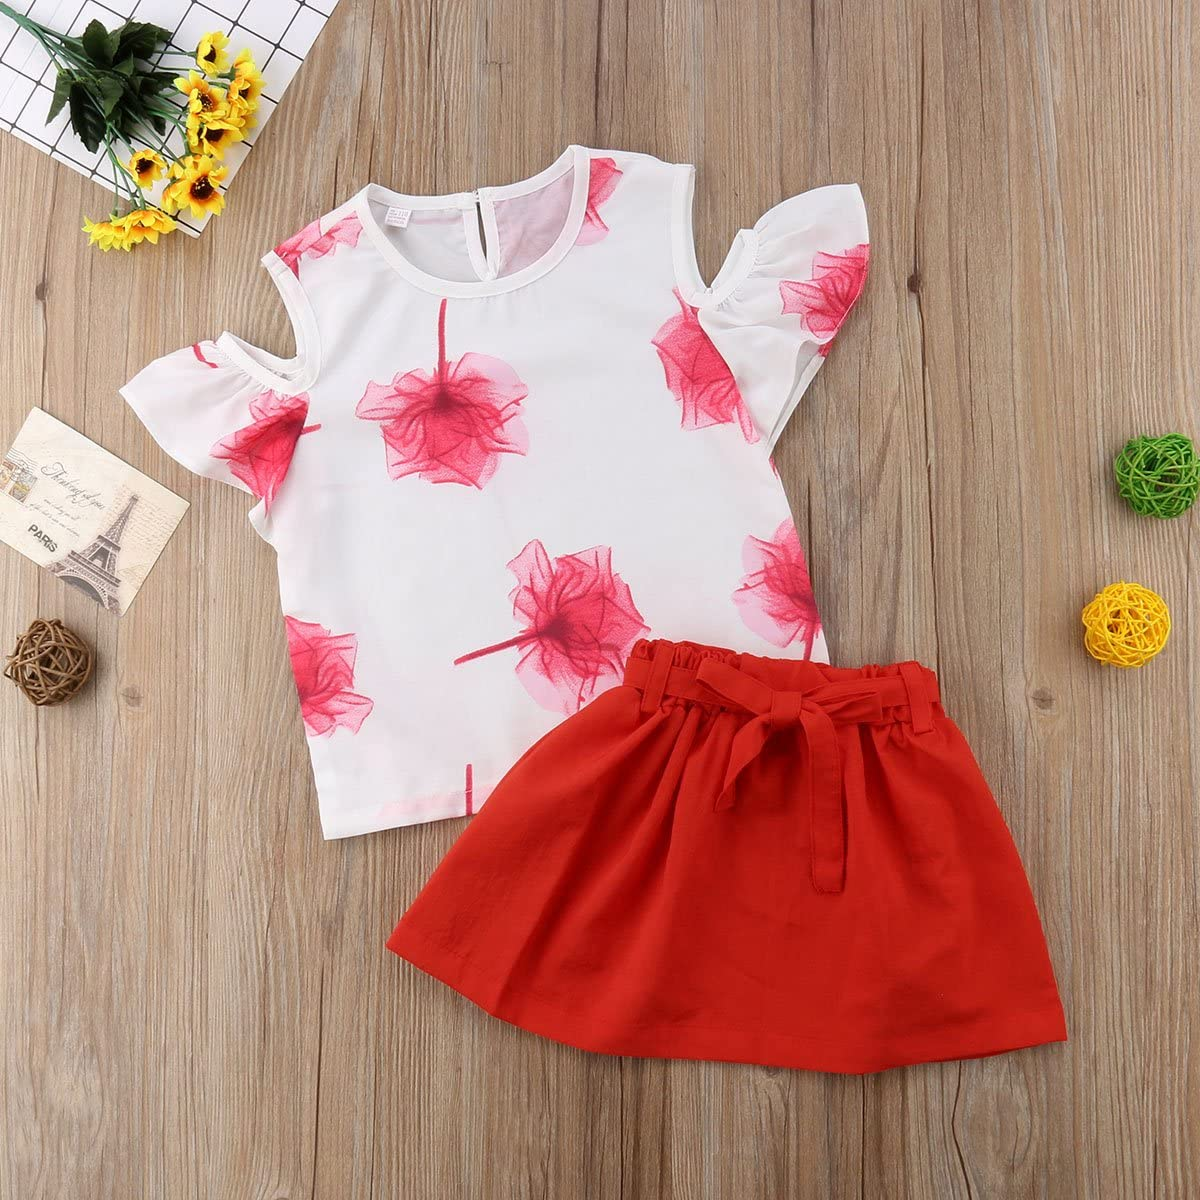 Baby Kid Girl Off Shoulder Floral T-Shirt Short Sleeve Top Red Skirt Playwear Summer Casual Outfit